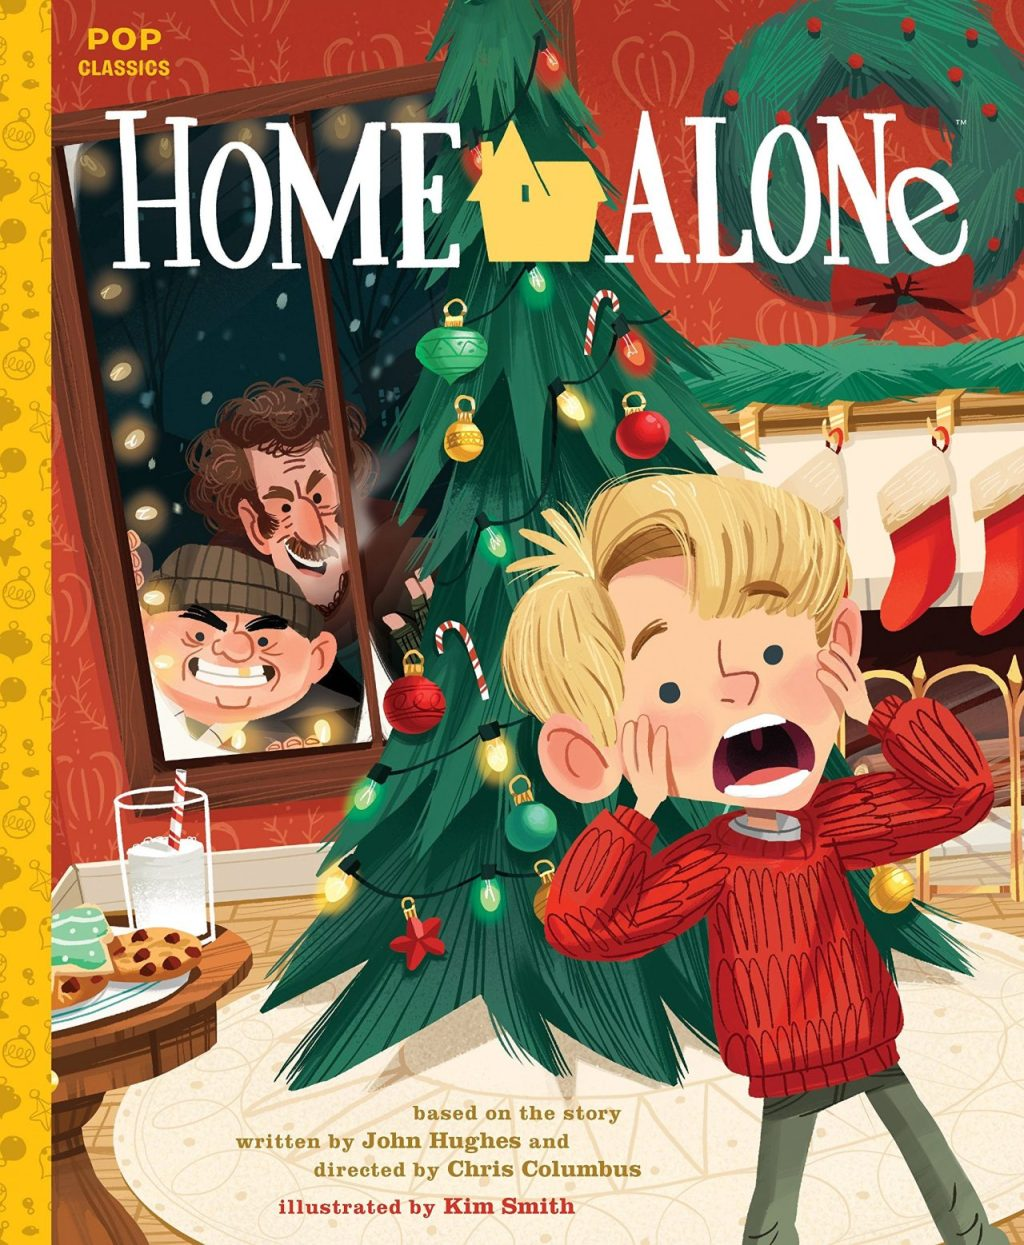 Home Alone Classic Illustrated Storybook Cover